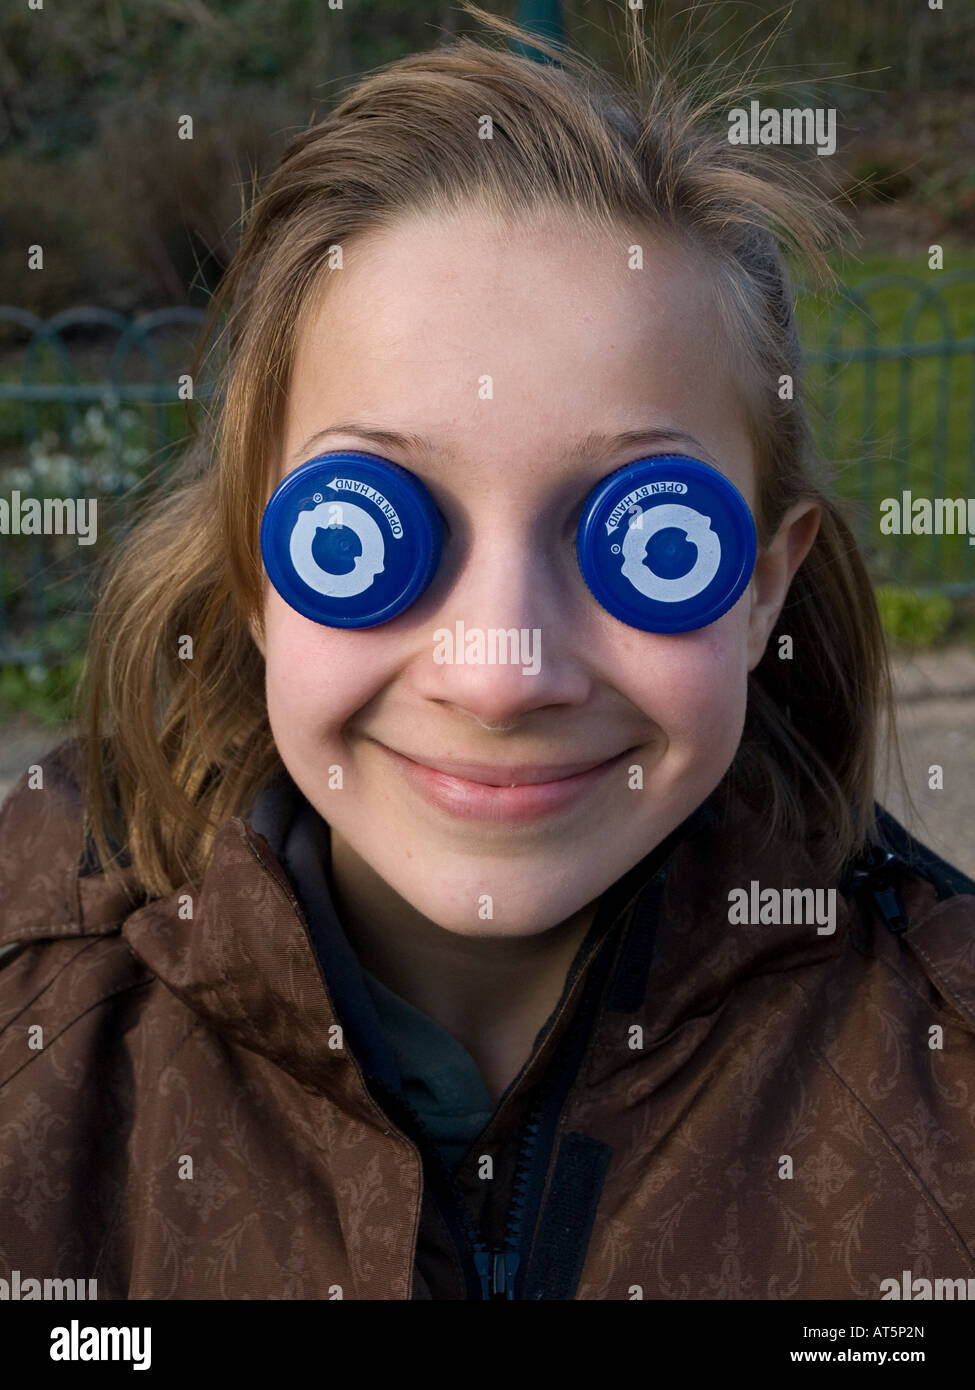 child with bottle top eyes 2008 Stock Photo